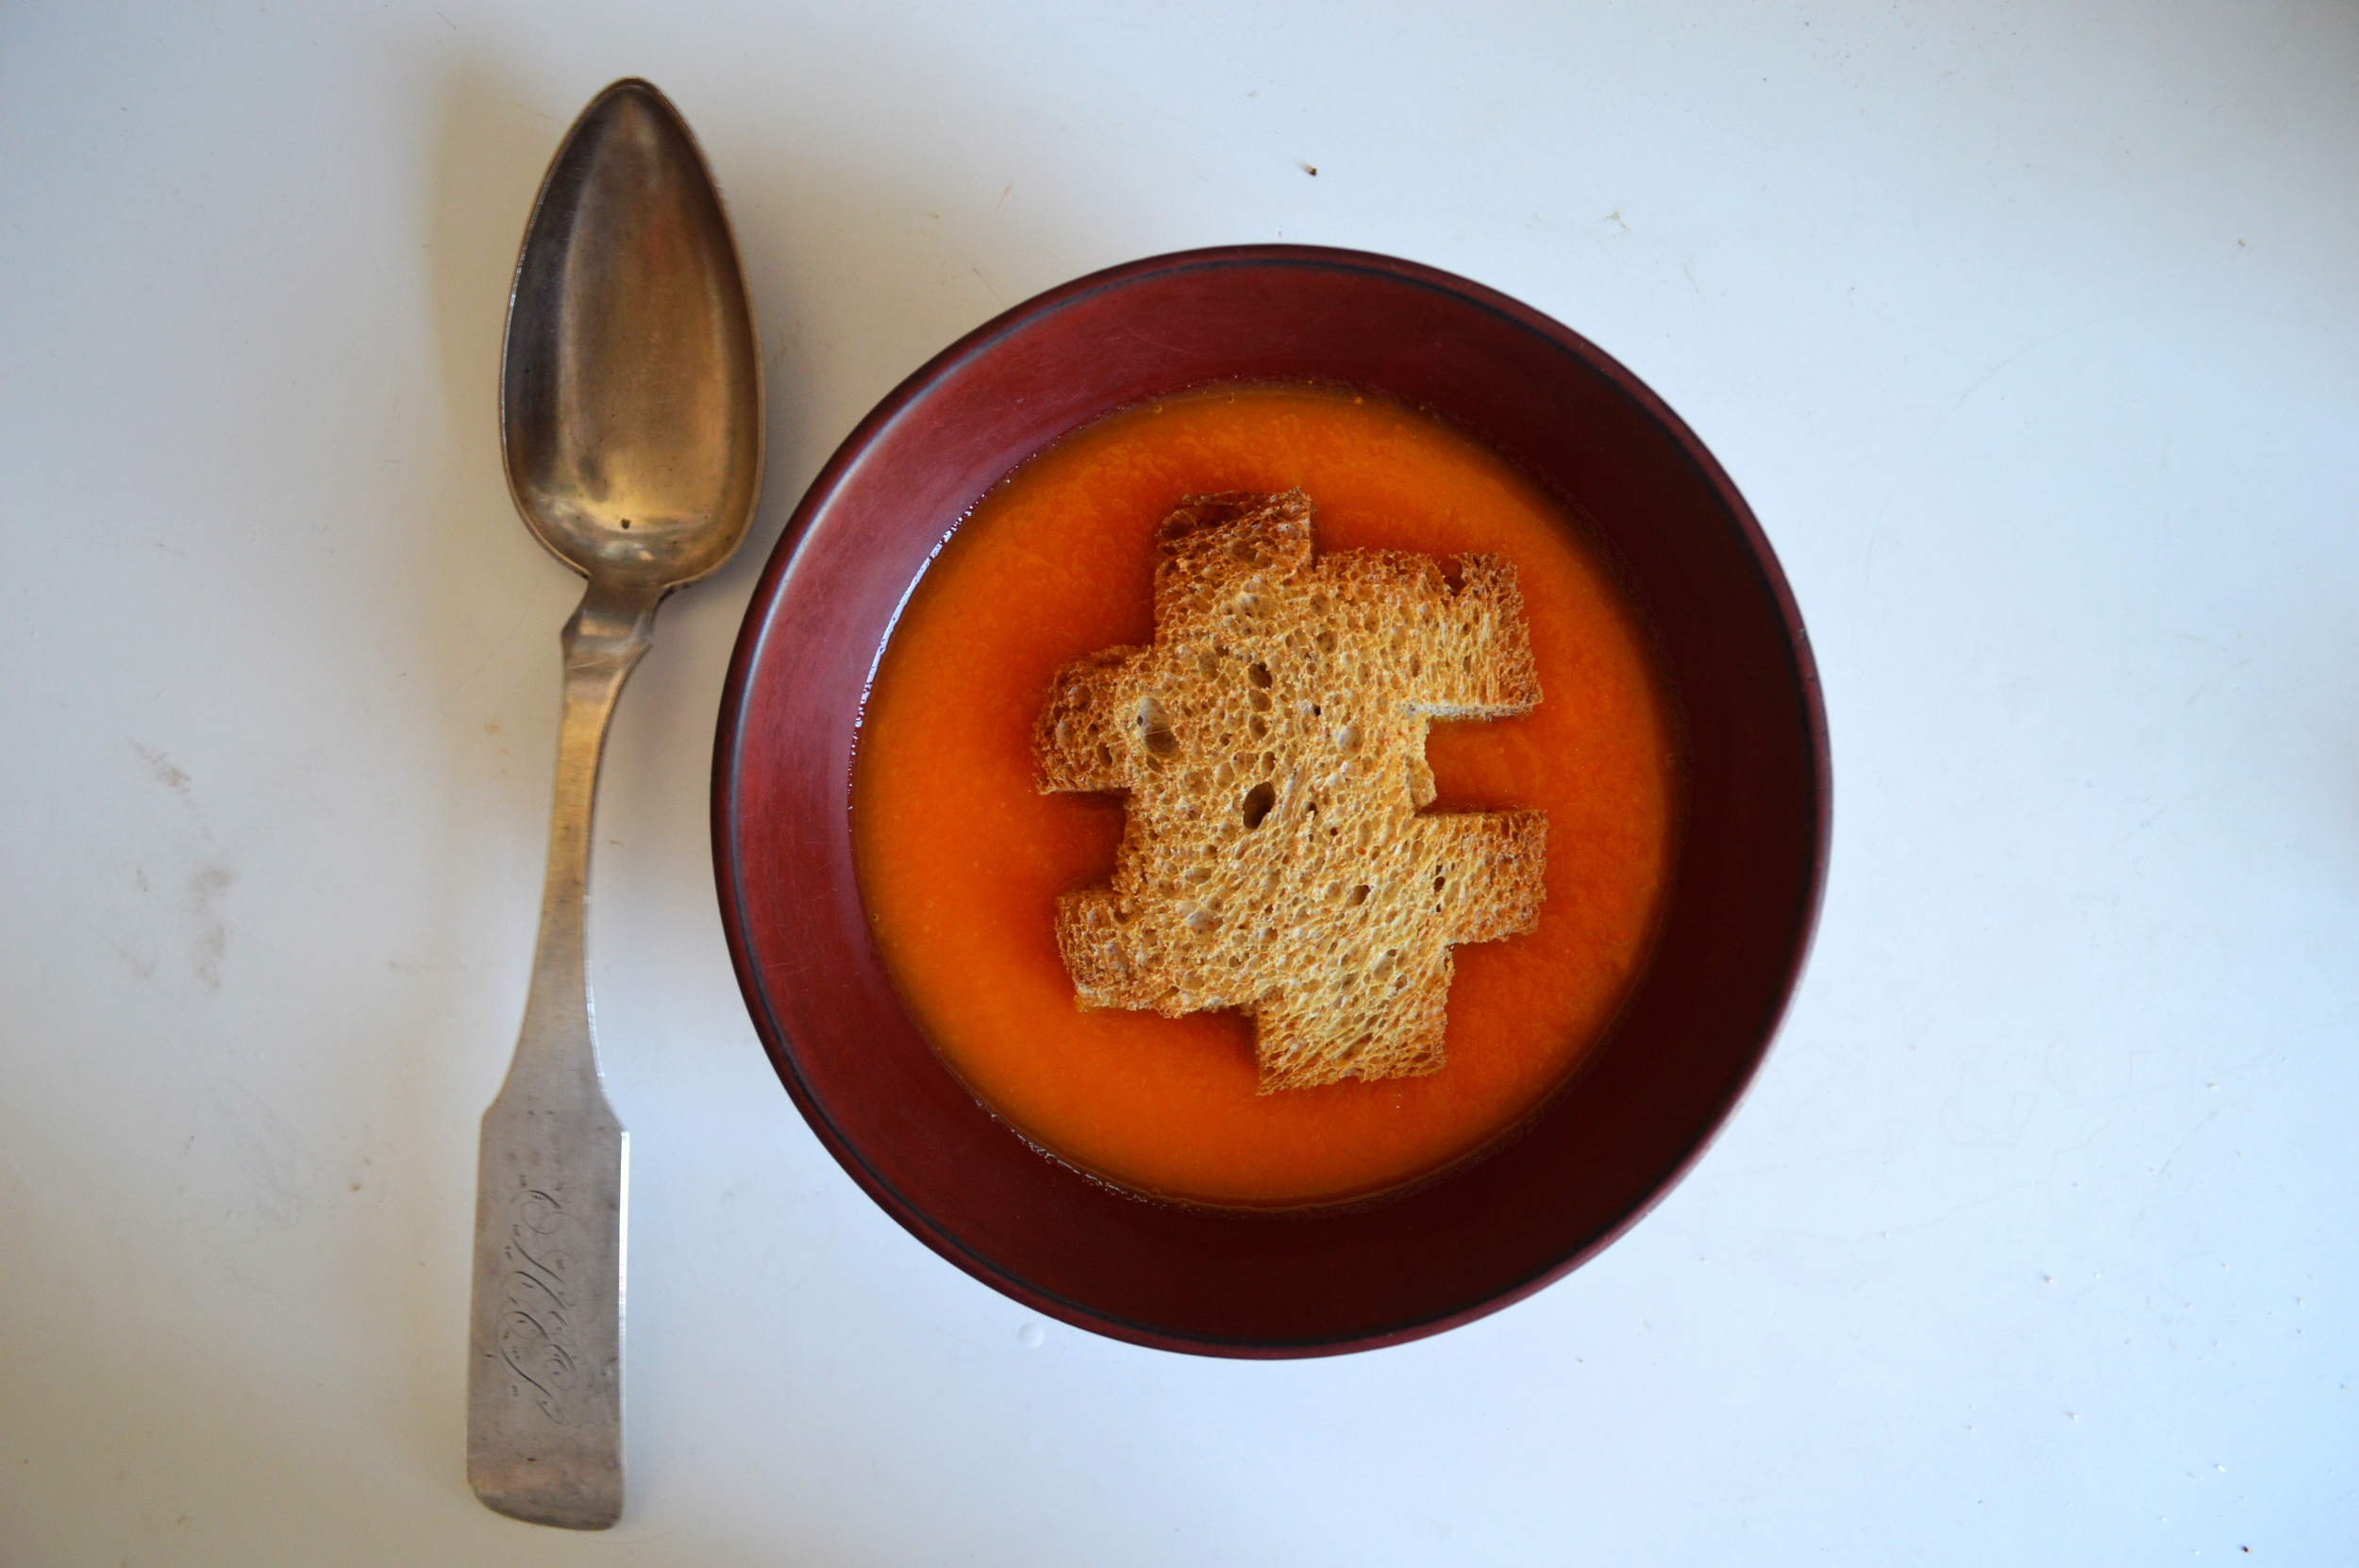 """Carrot soup with a puzzle piece garnish, referencing Anastasi's famous """"Puzzle Puzzle"""""""